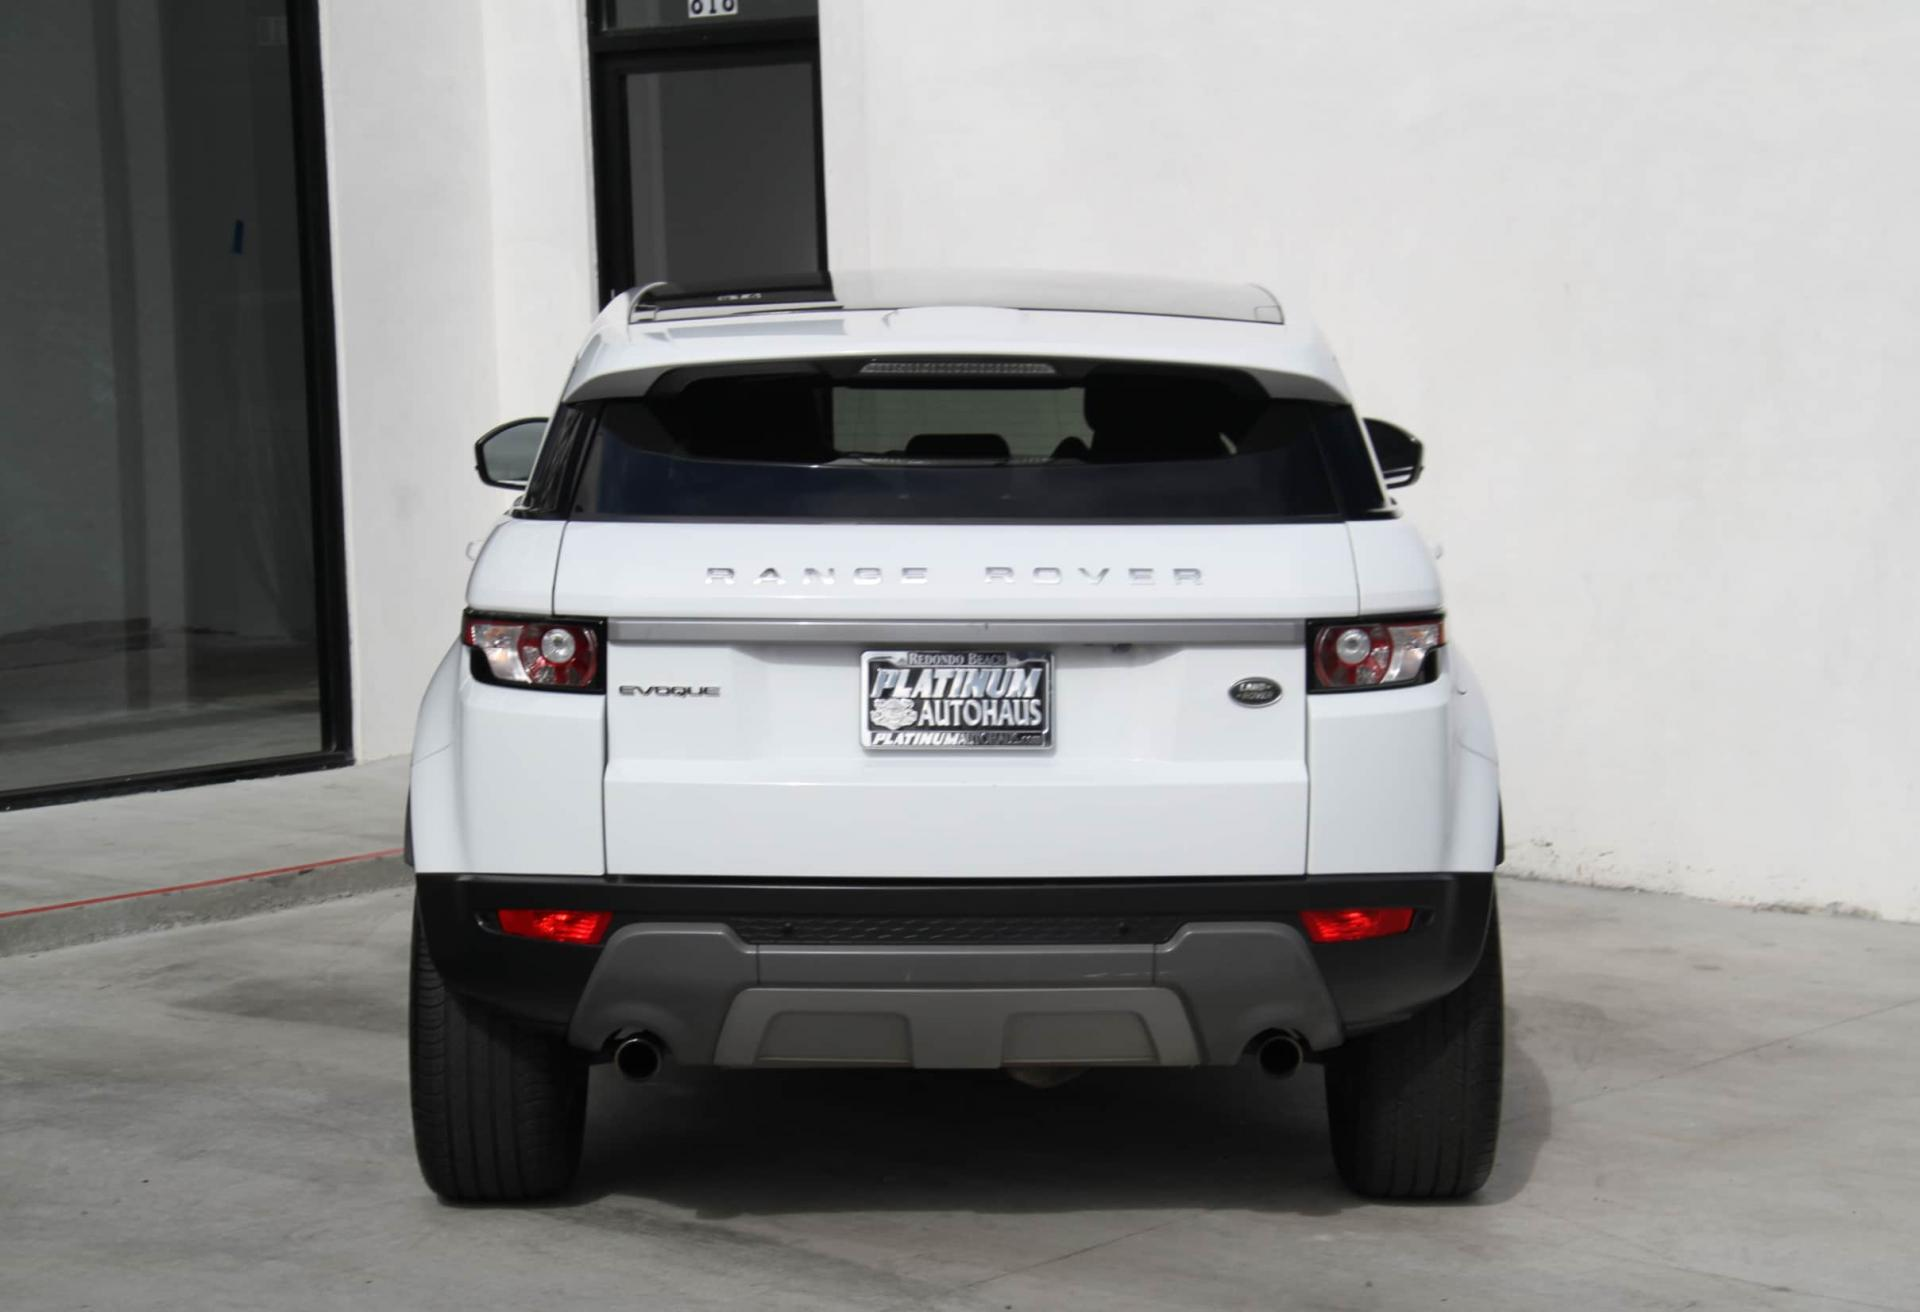 2014 Land Rover Range Rover Evoque PURE PLUS Stock 5881 for sale